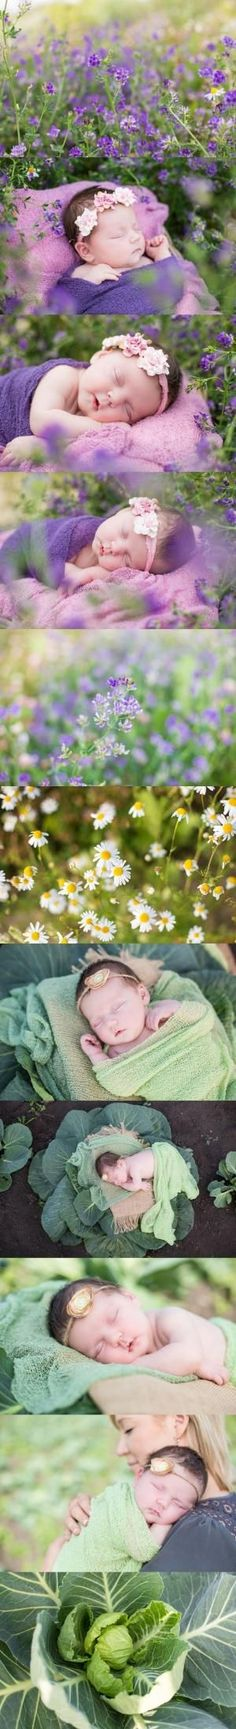 Melanie Bennett Photography|Newborn Photography Outdoor Newborn Photography| Evoking You| Wildflowers| Cabbage Patch| Baby Girl by Dressv-Reviews